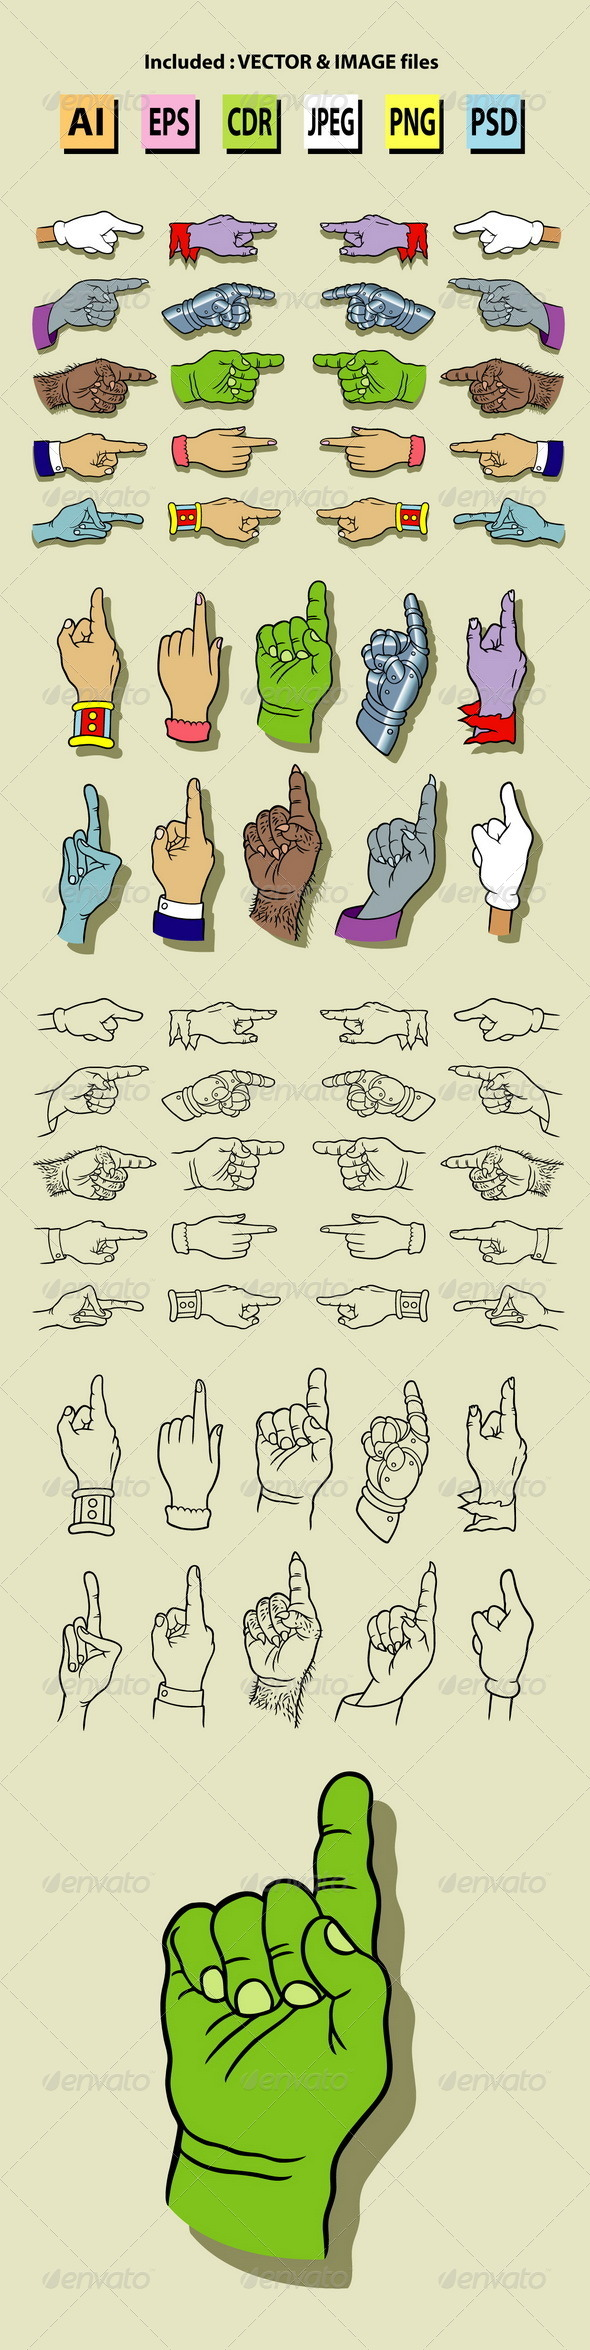 GraphicRiver Hands Pointing Illustration 5954573